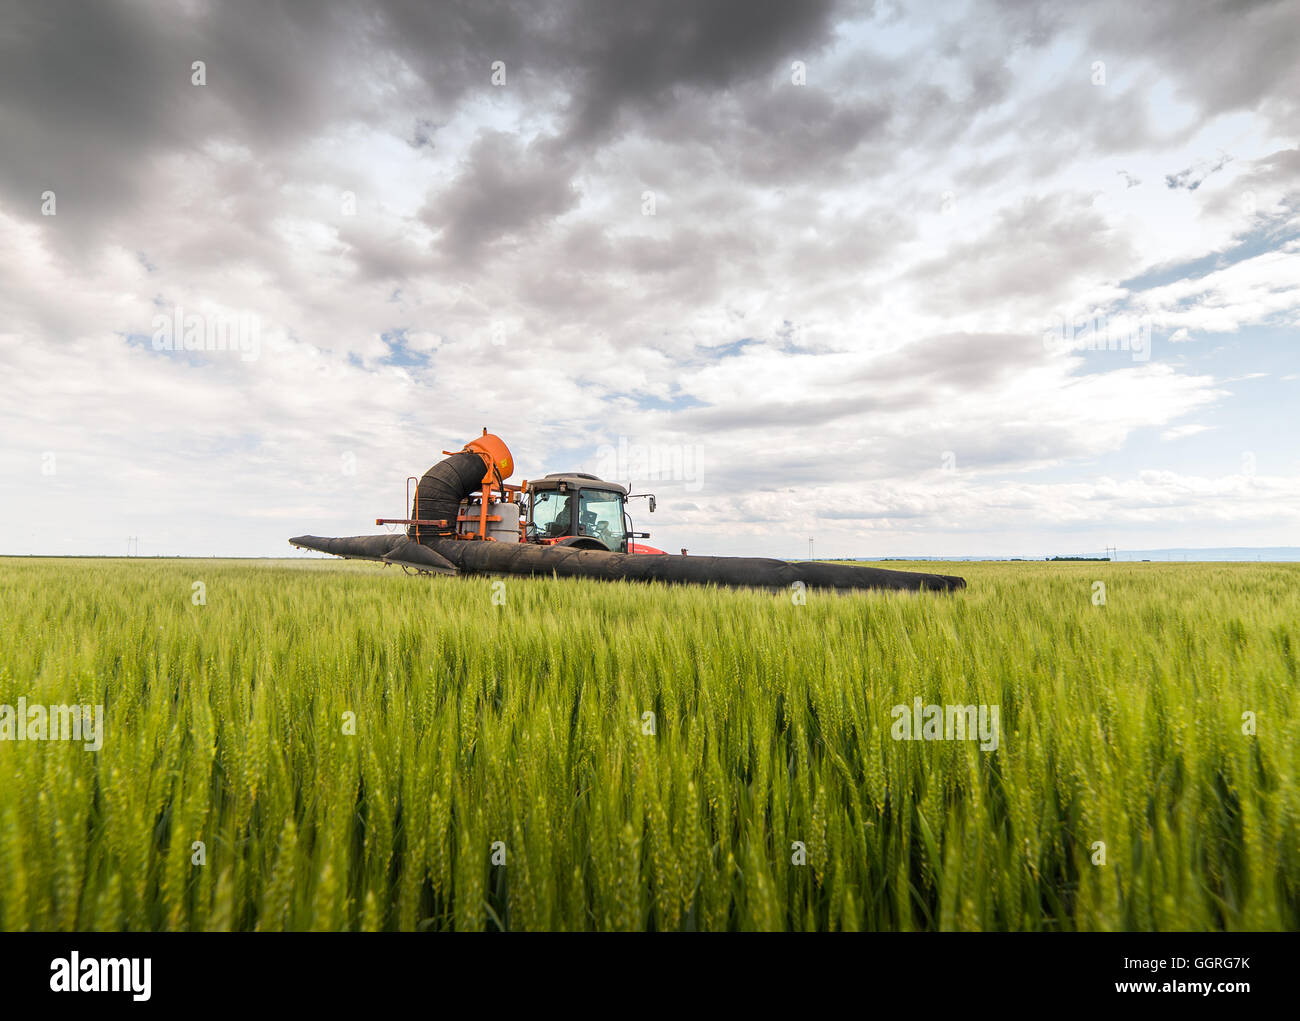 Tractor spraying wheat field with sprayer - Stock Image